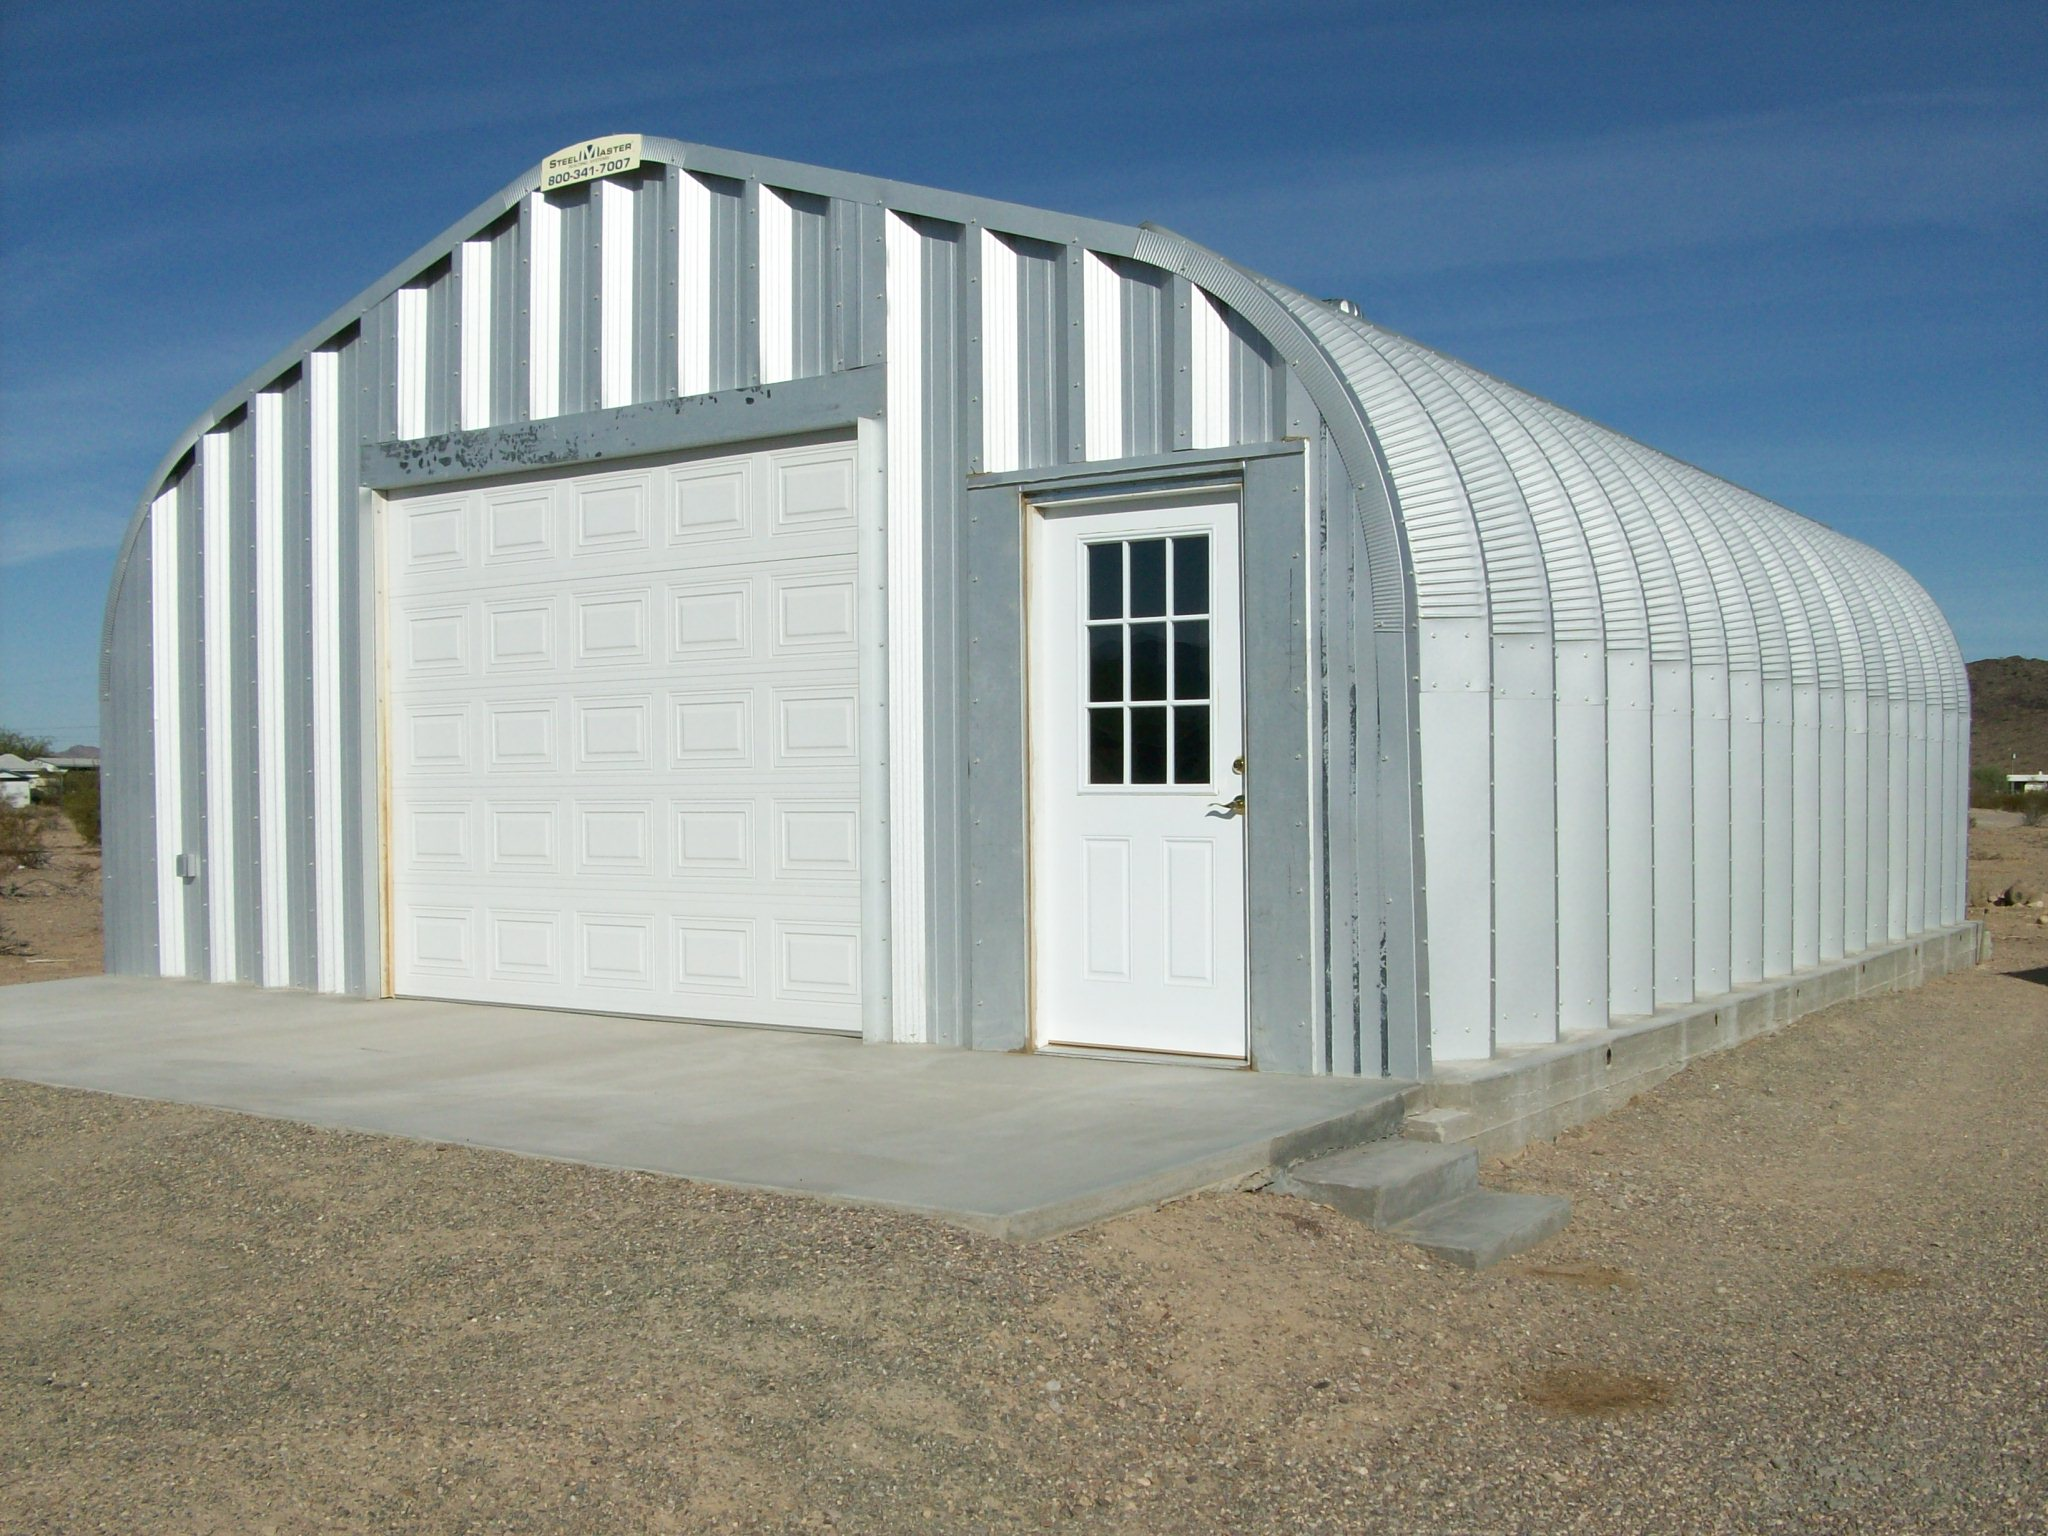 Fine Designed Prefab Garage With Visual Simplicity: Steel Building Metal Prefab Garage Model